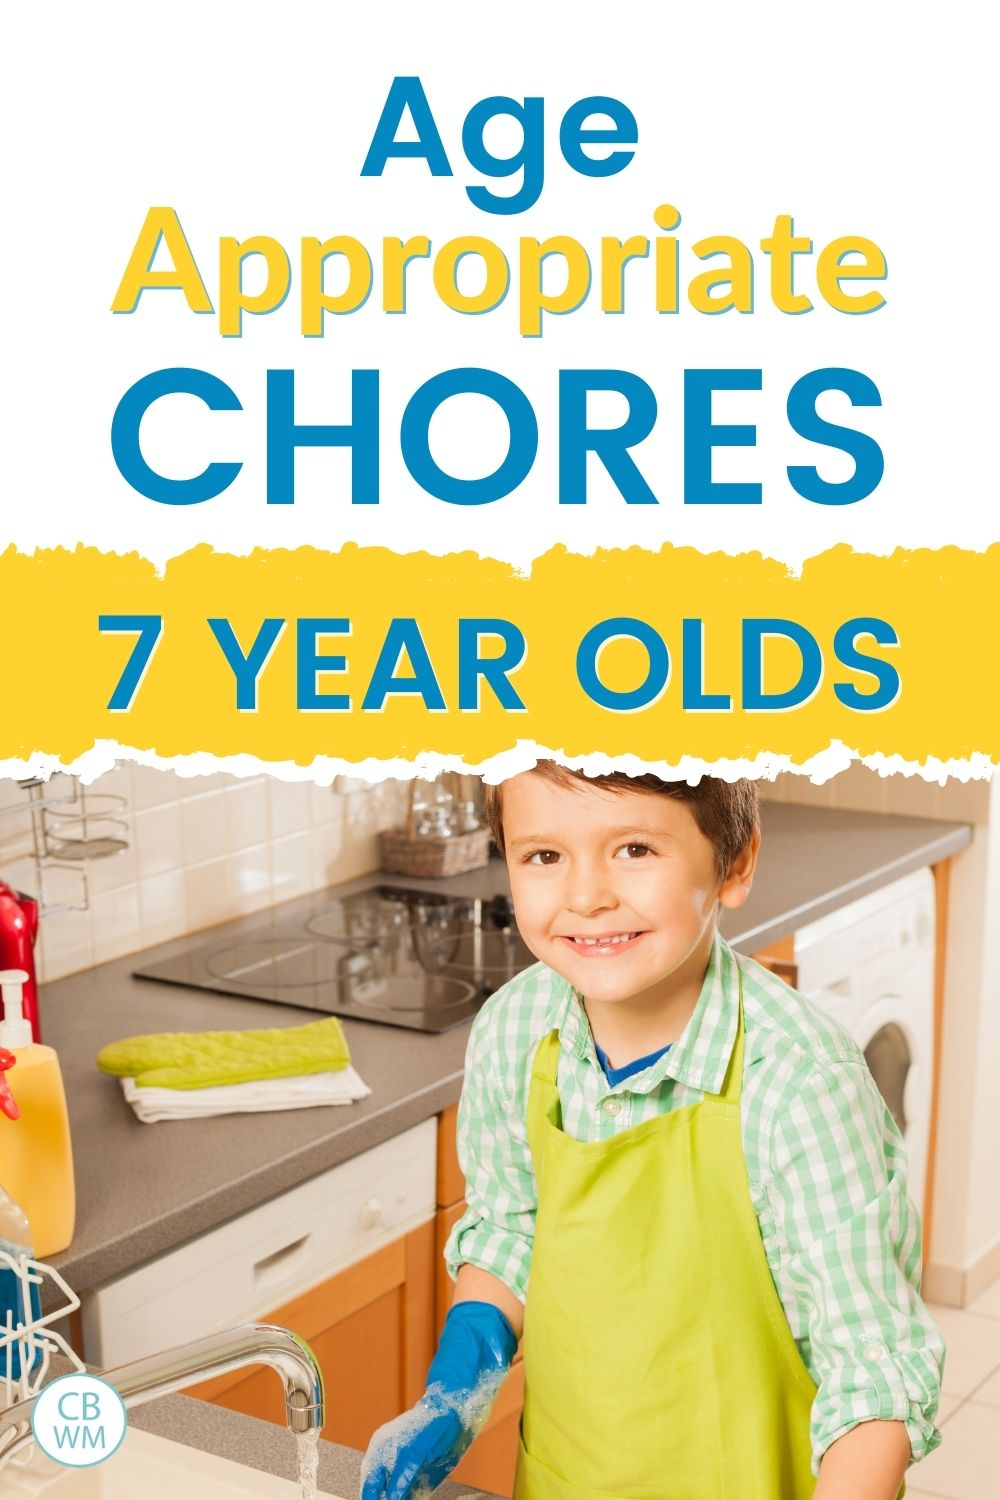 age appropriate chores for 7 year olds